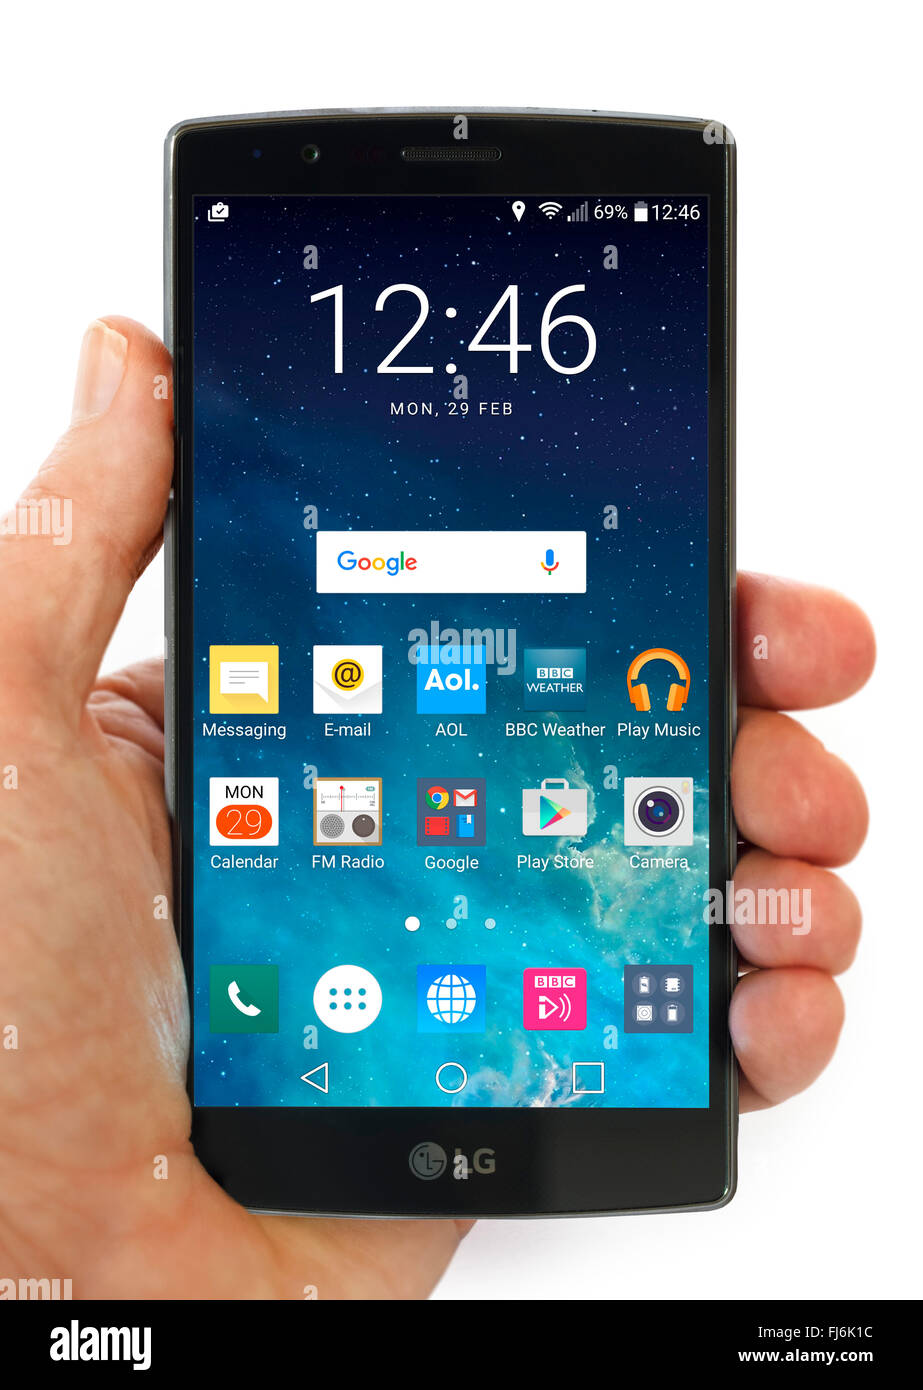 Home screen on an LG G4 5.5 inch Android phone running Android 6 Marshmallow - Stock Image